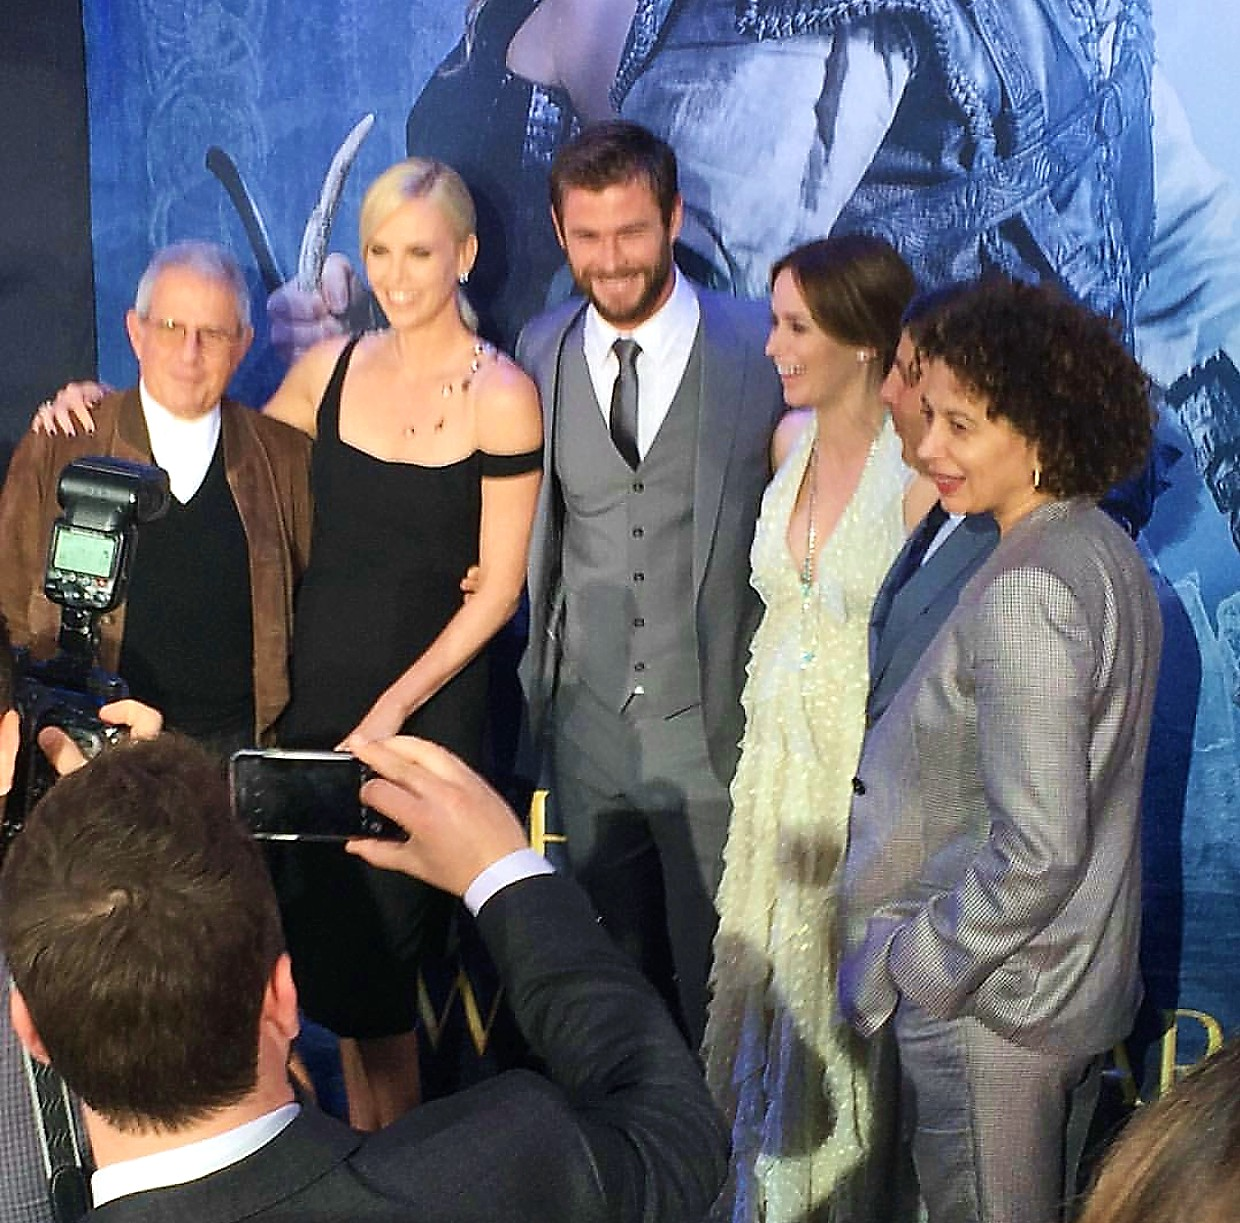 The Huntsman Winter's War, movie premiere, Charlize Theron, Chris Hemsworth, Emily Blunt